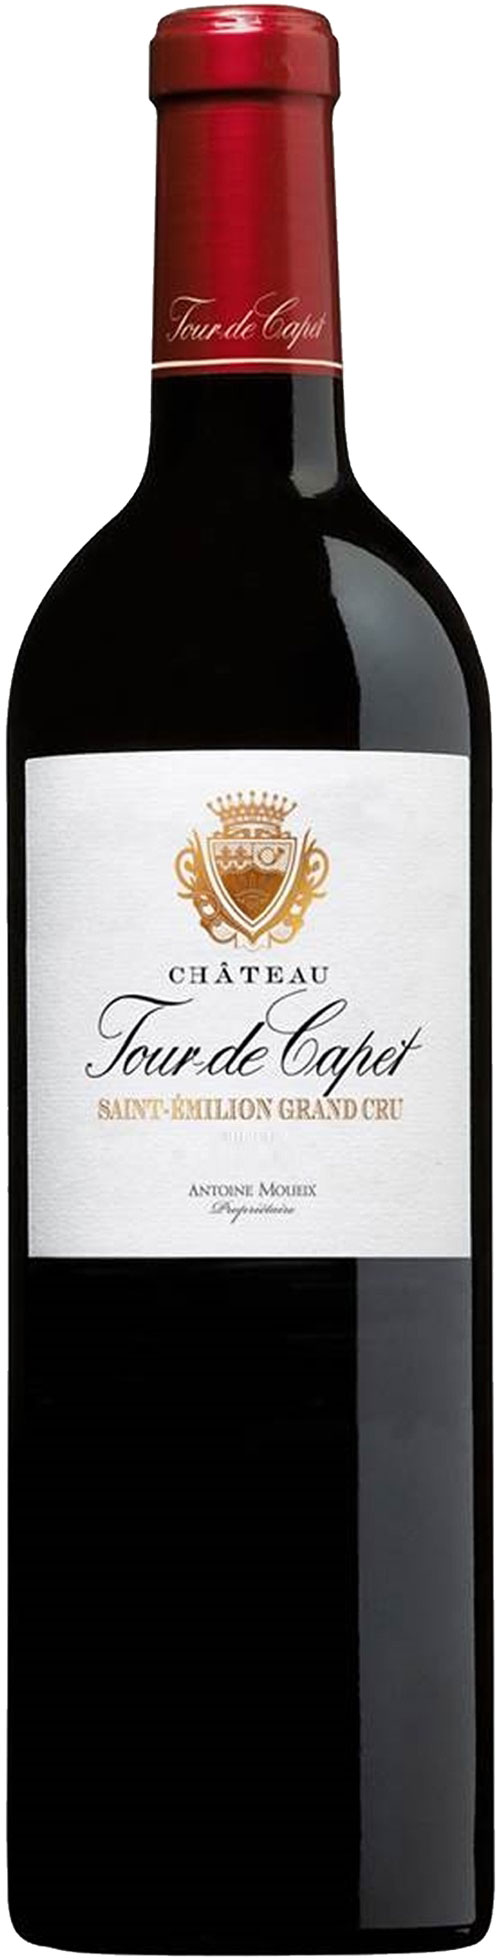 Chateau Tour de Capet - Saint-Emilion Grand Cru 2013 75cl Bottle